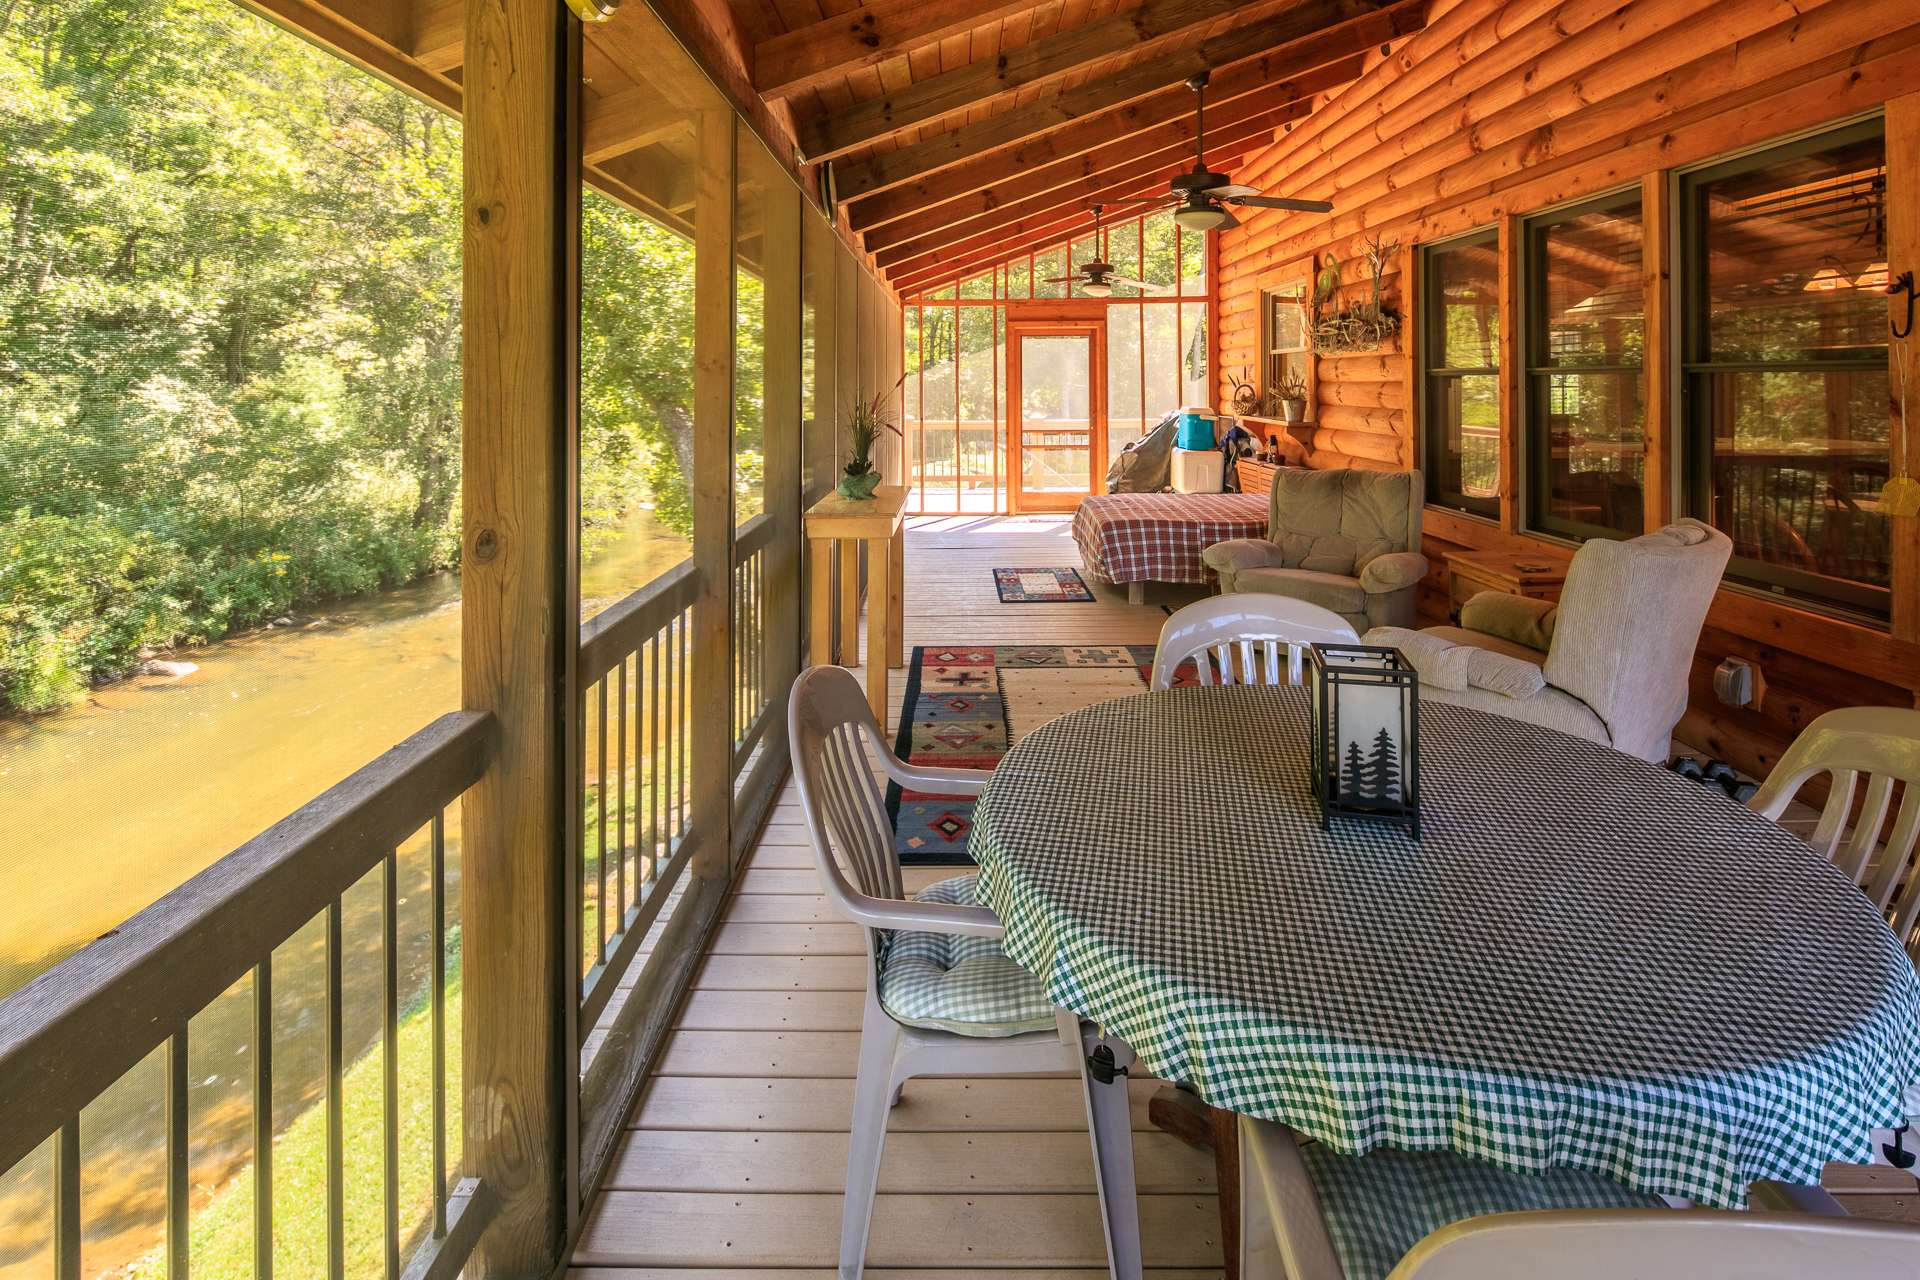 The great room also offers easy access to the back screened porch for alfresco dining above the creek.